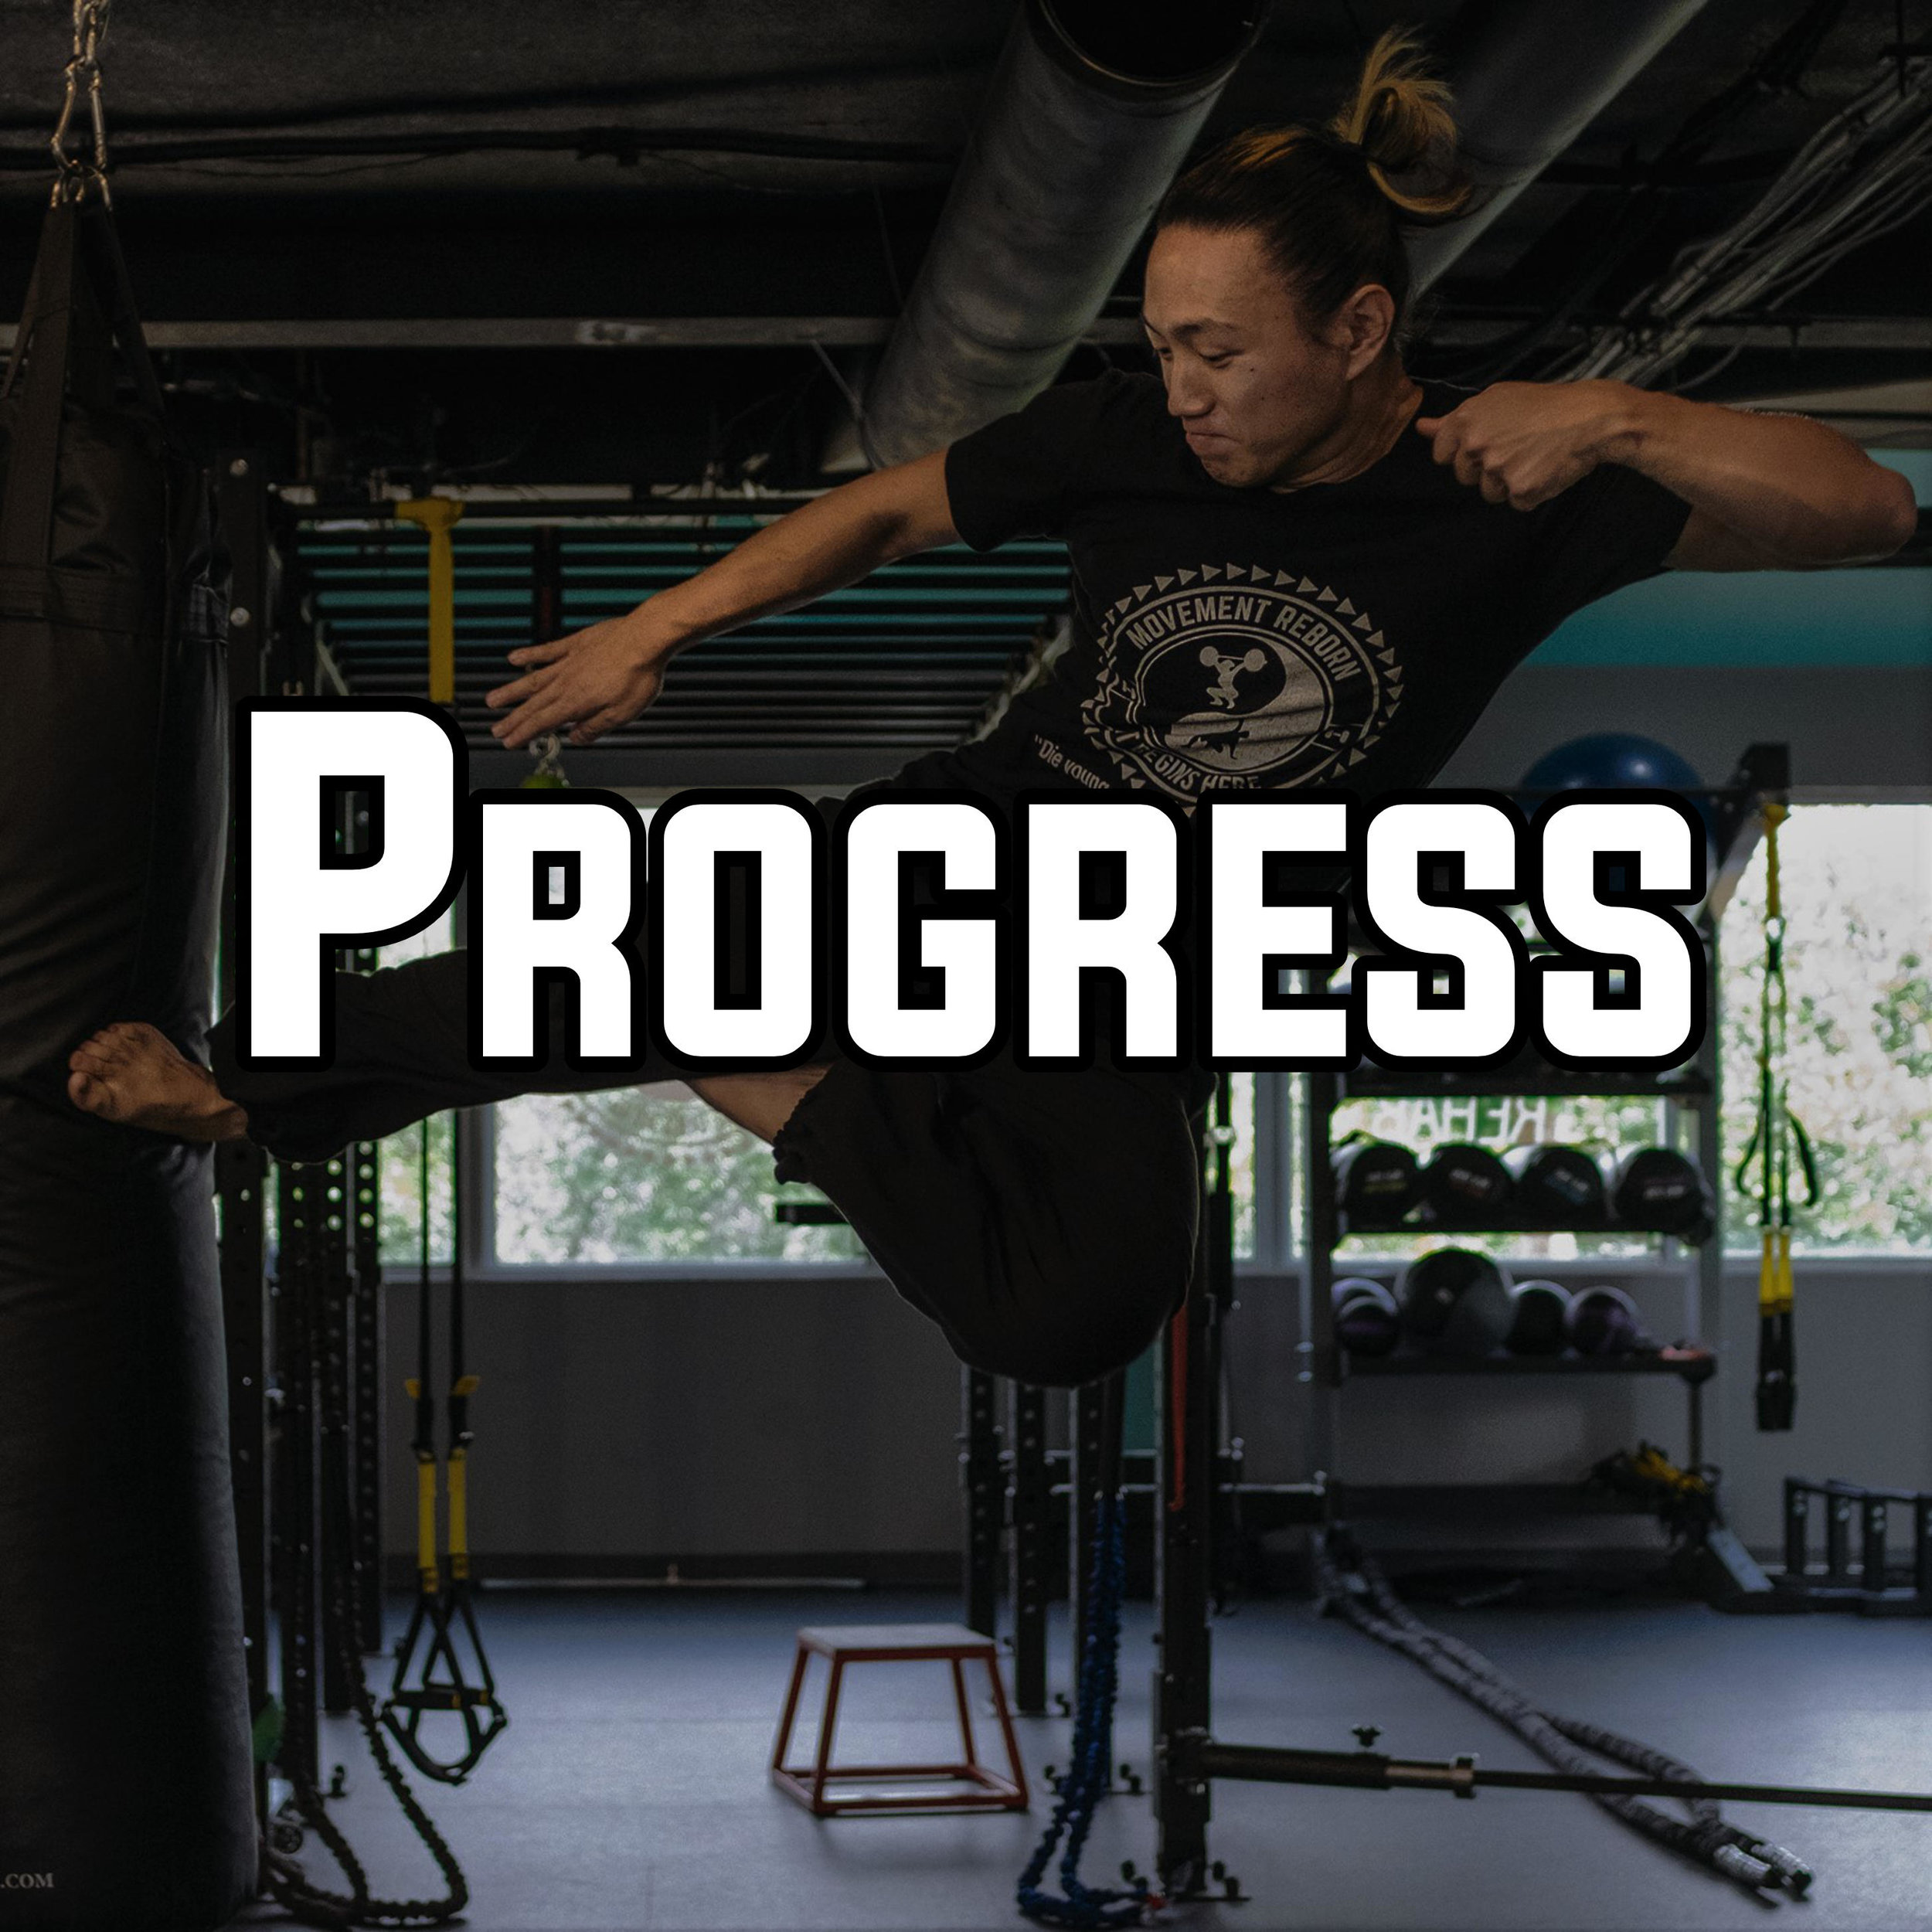 After the fundamentals are set, we can progress you to any other health and fitness en-devours you desire, from Olympic Lifting, Kettlebells, Calisthenics, Weightlifting, Animal Flow, Martial Arts, Boxing, Progressing in any sport etc. We fully customize your workouts based on where you are at and where you want to go.